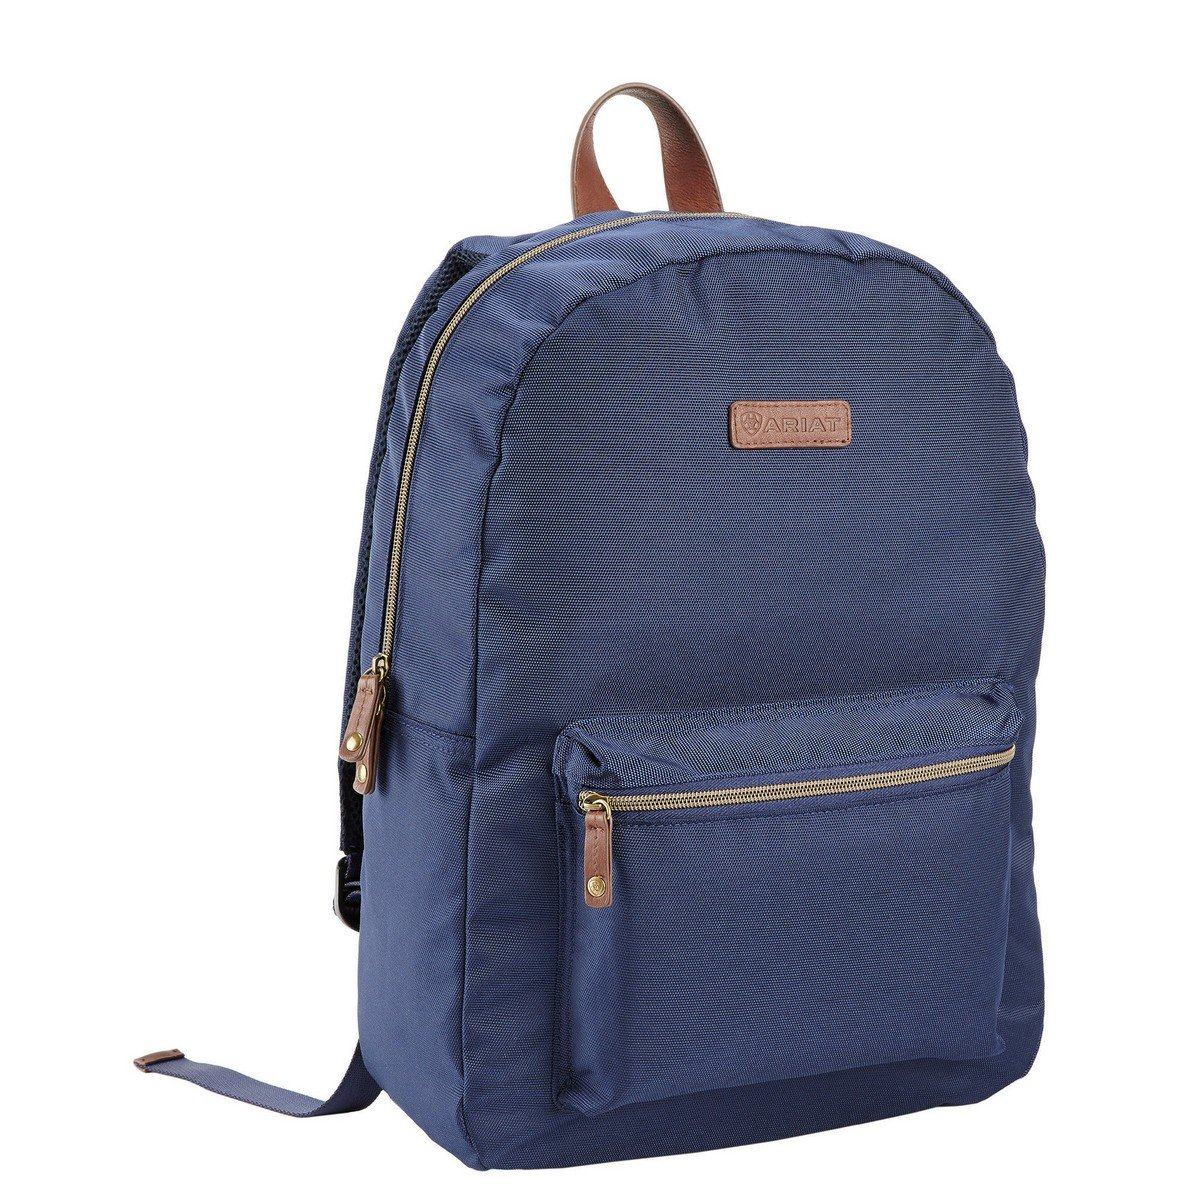 Billede af Ariat Backpack Core Navy One Size